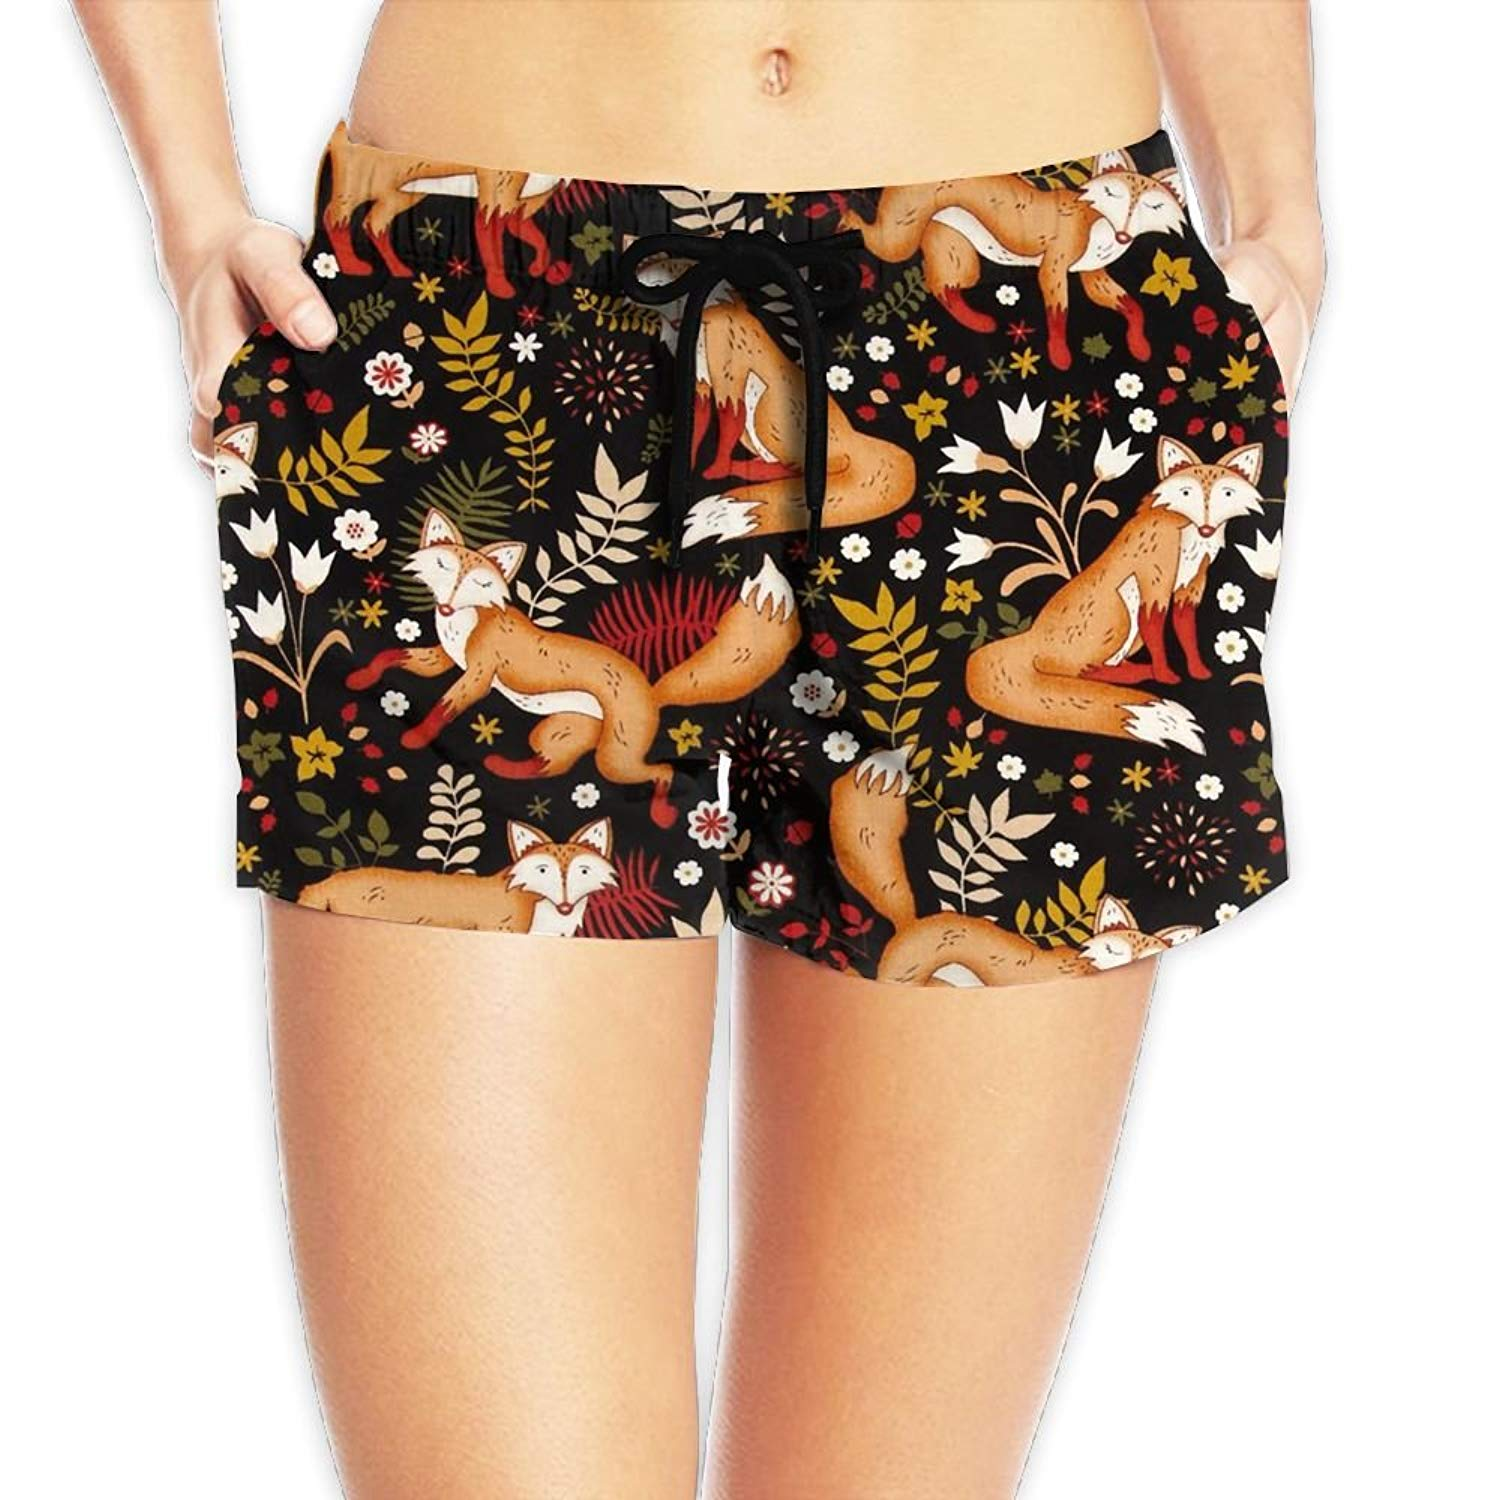 4757475c12 Get Quotations · Beautiful Fox Sexy Quick Dry Boardshort Hot Pants Swimming  Trunks Tropical Beach Shorts for Women Girls